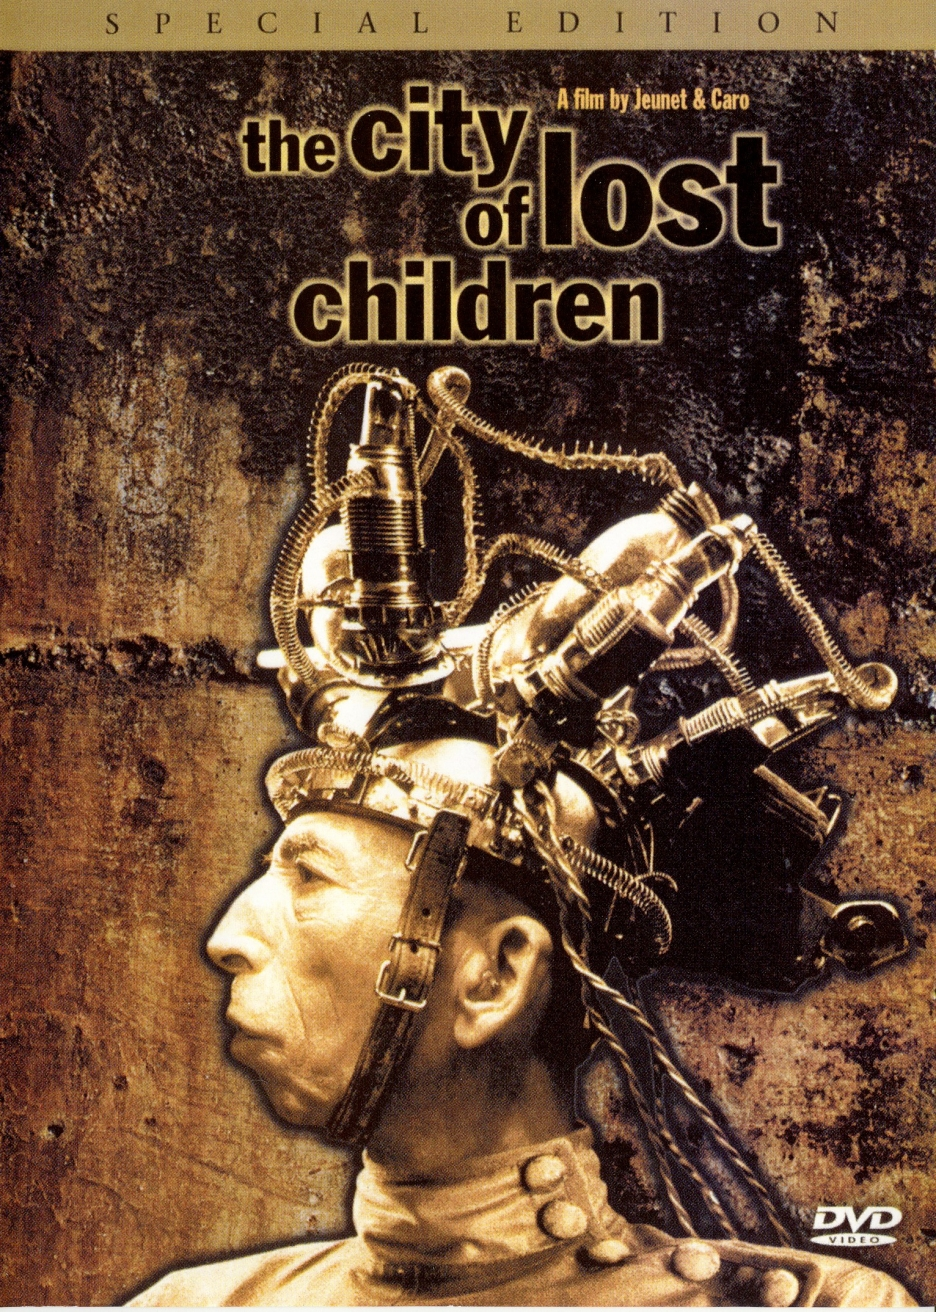 beauty on film �the city of lost children� review